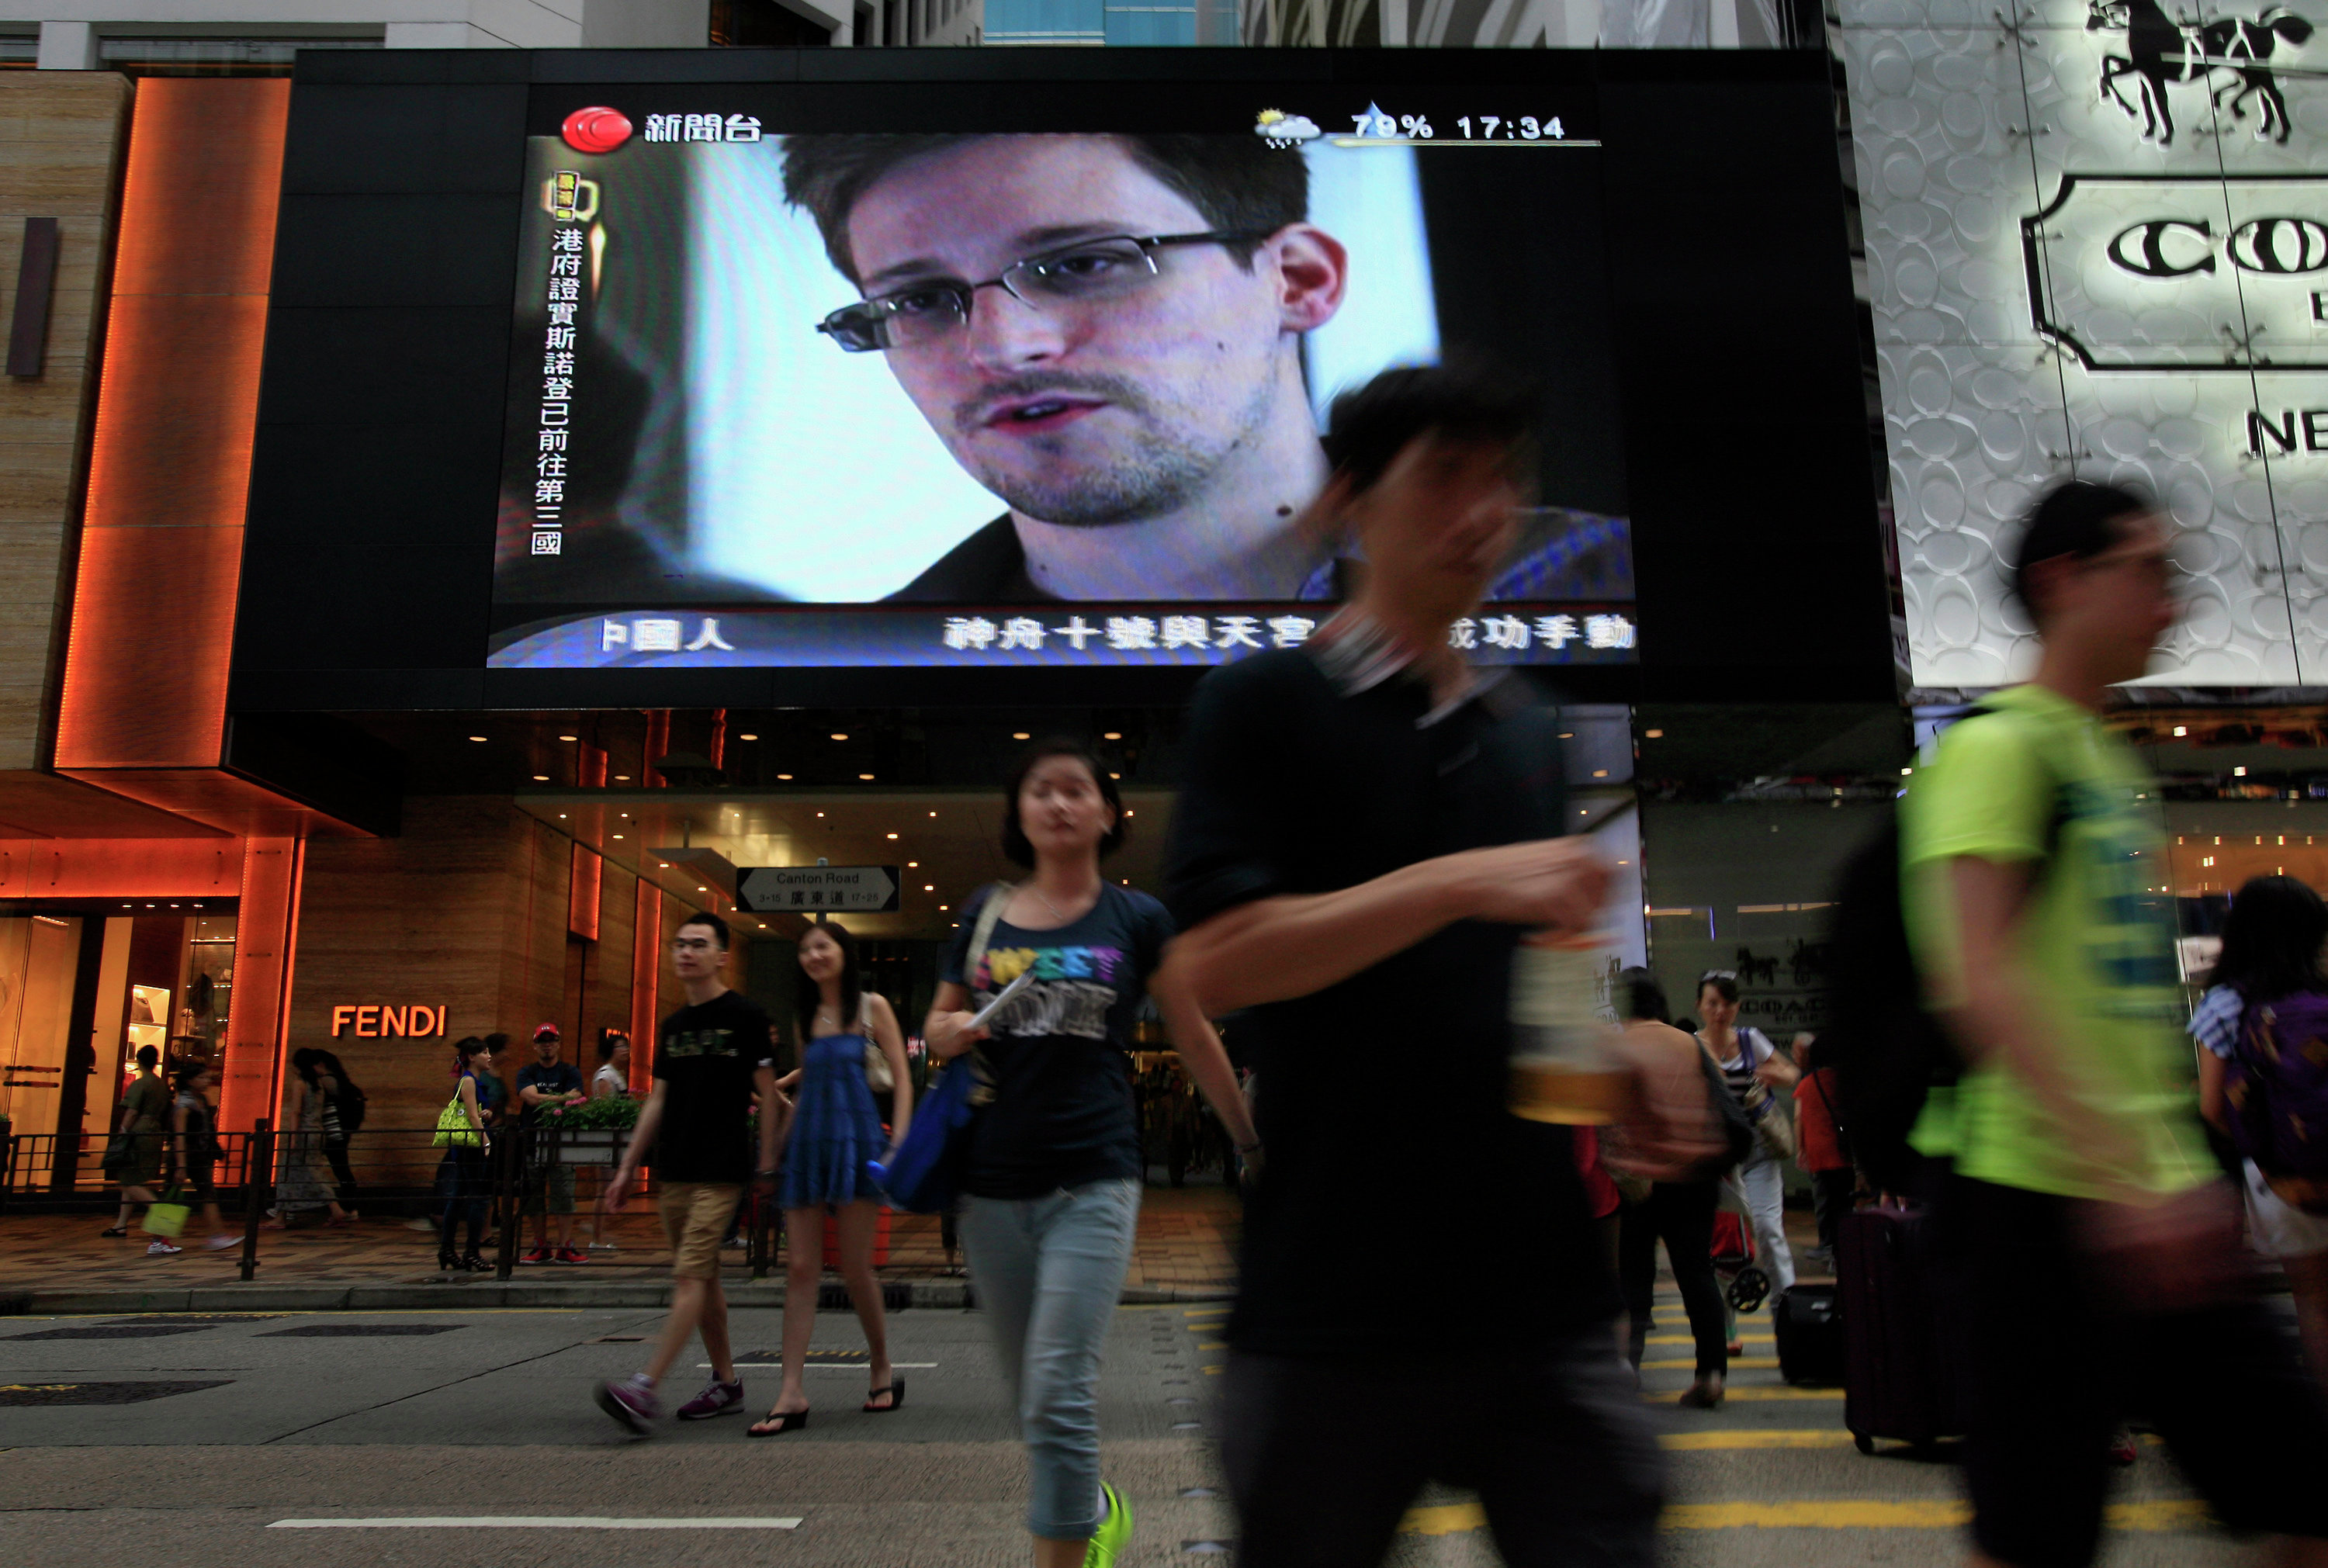 A TV screen at a shopping mall in Hong Kong shows a news report of former CIA employee and NSA whistleblower Edward Snowden.